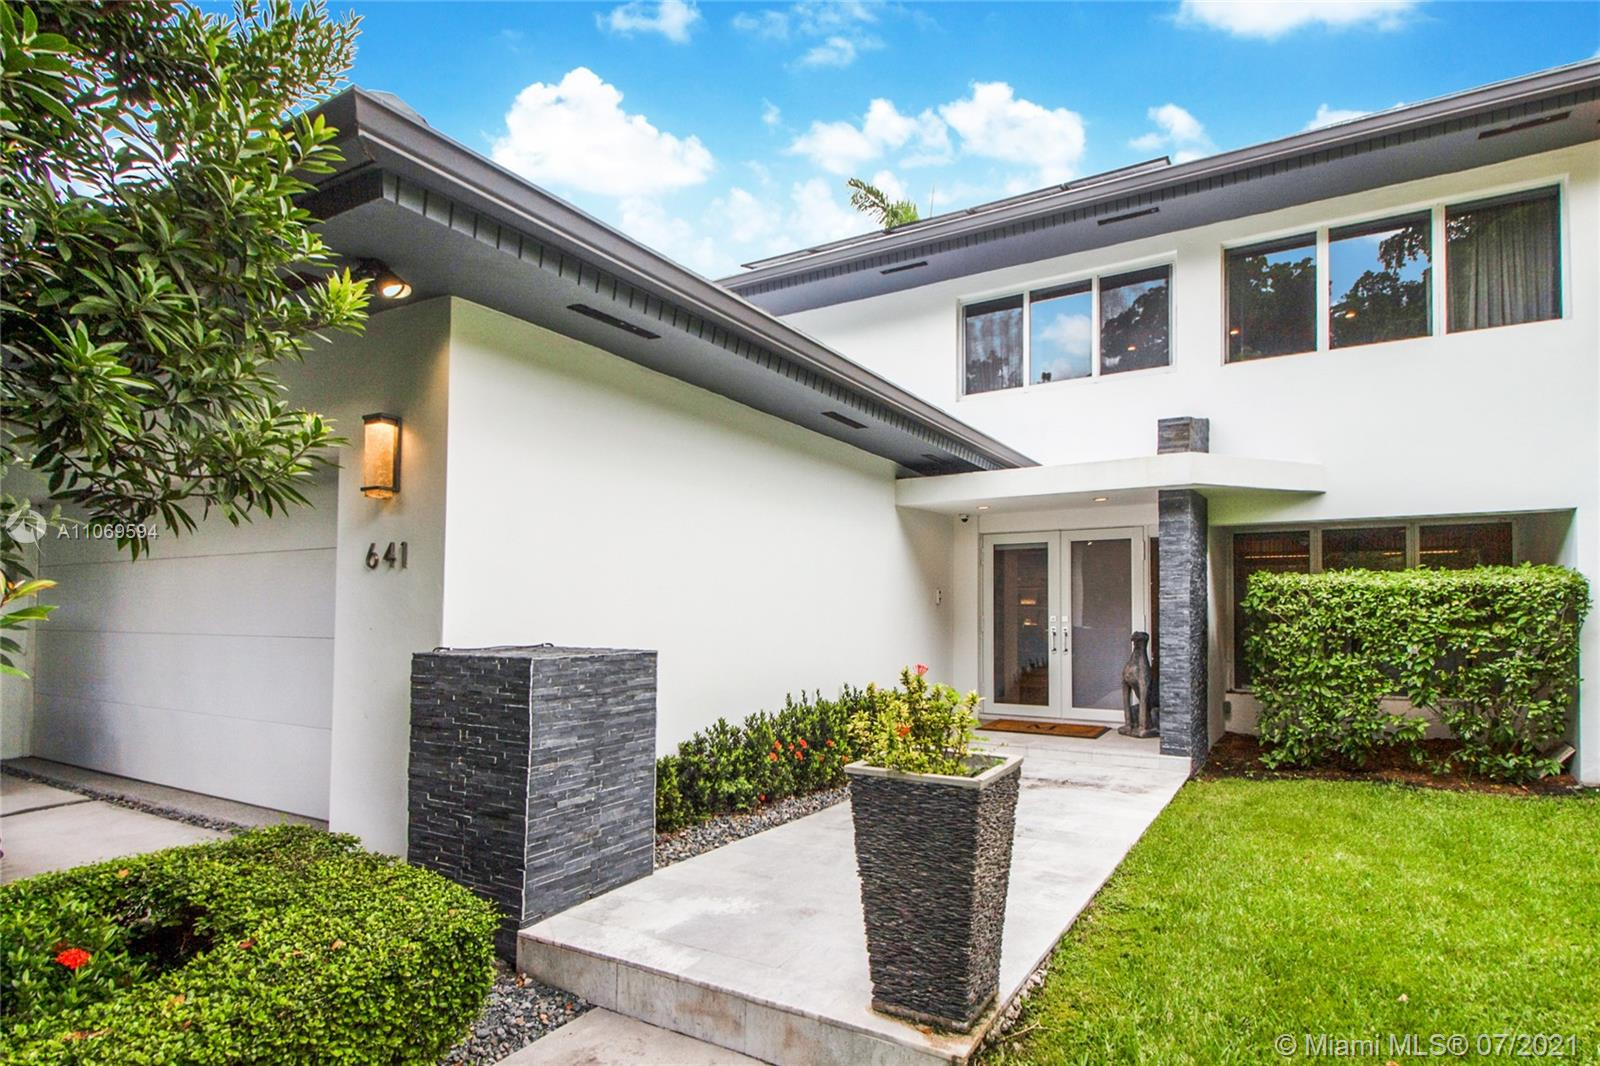 Lovely Sevilla. Just minutes from Downtown Coral Gables, this two-story 3/3.5 fully renovated in 2016 features a light and bright open floor plan, impact windows/doors, bonus office/den, marble & wood floors, oversized laundry room, a true 2-car garage, 9.1 kW solar panel array, electric vehicle charger, beautiful private backyard with saltwater pool and built-in BBQ. Curb appeal galore at an outstanding address.